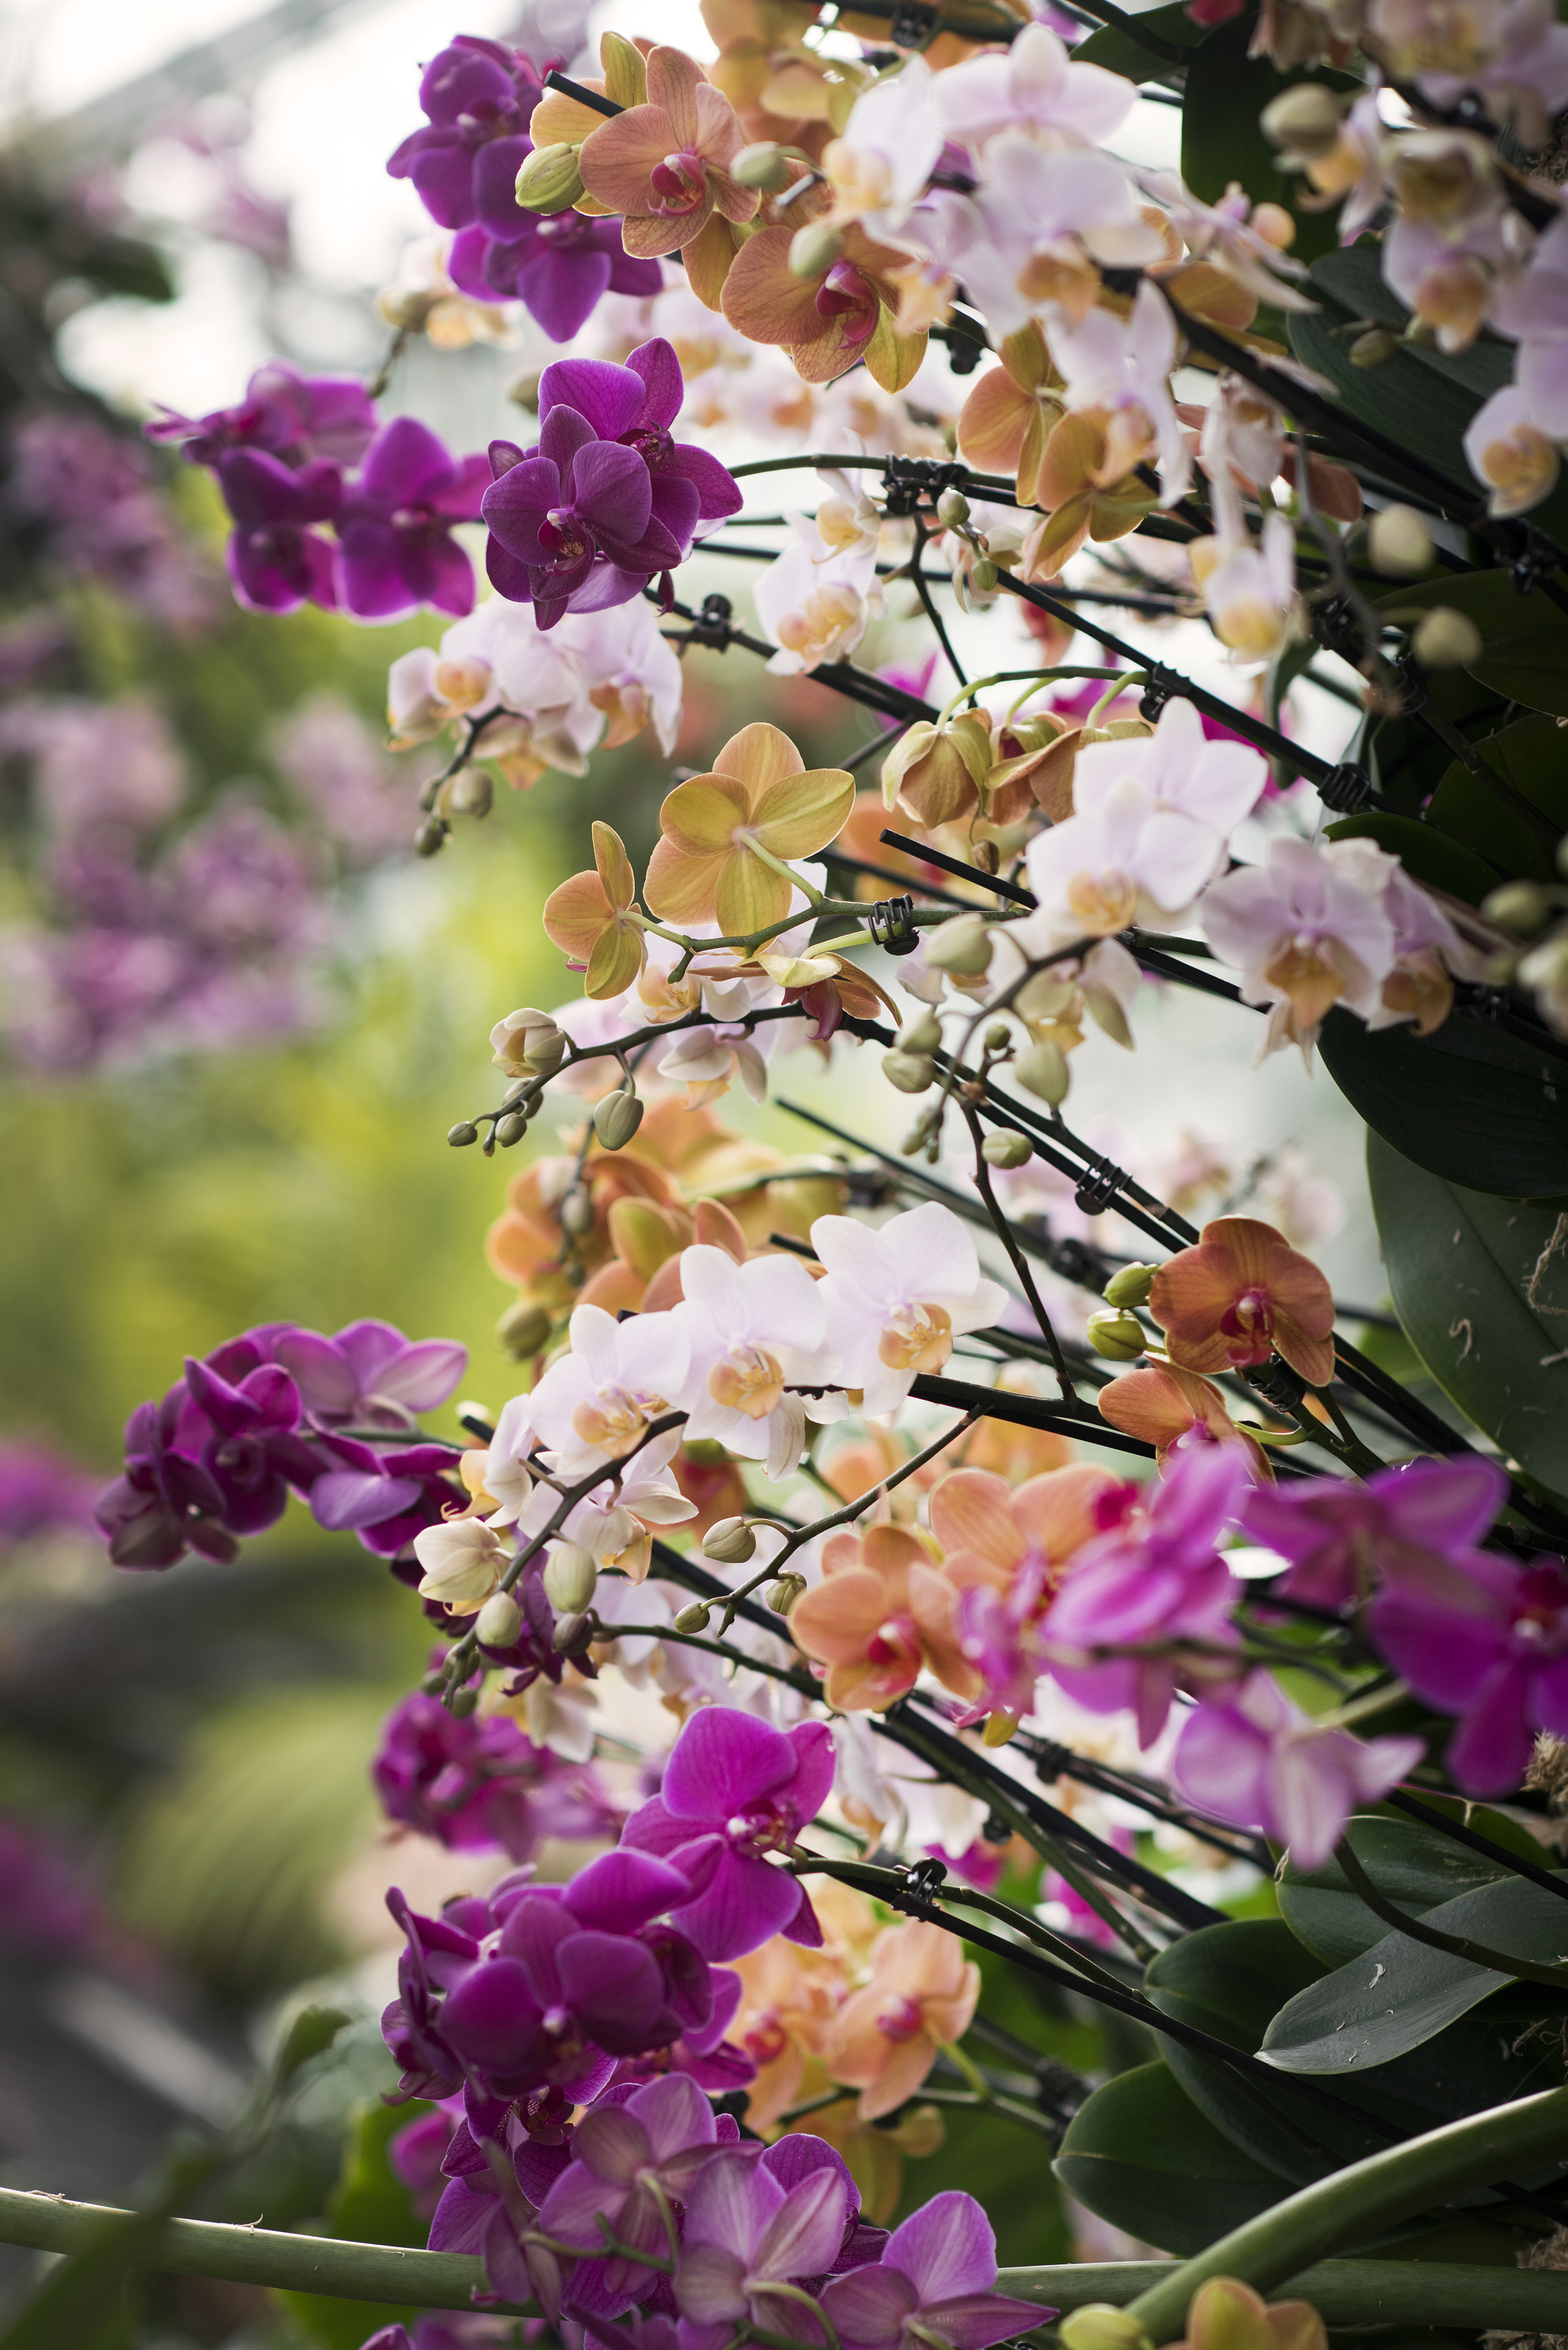 Orchid mania at Kew Gardens Orchid Festival (Jeff Eden/Royal Botanic Gardens Kew/PA)